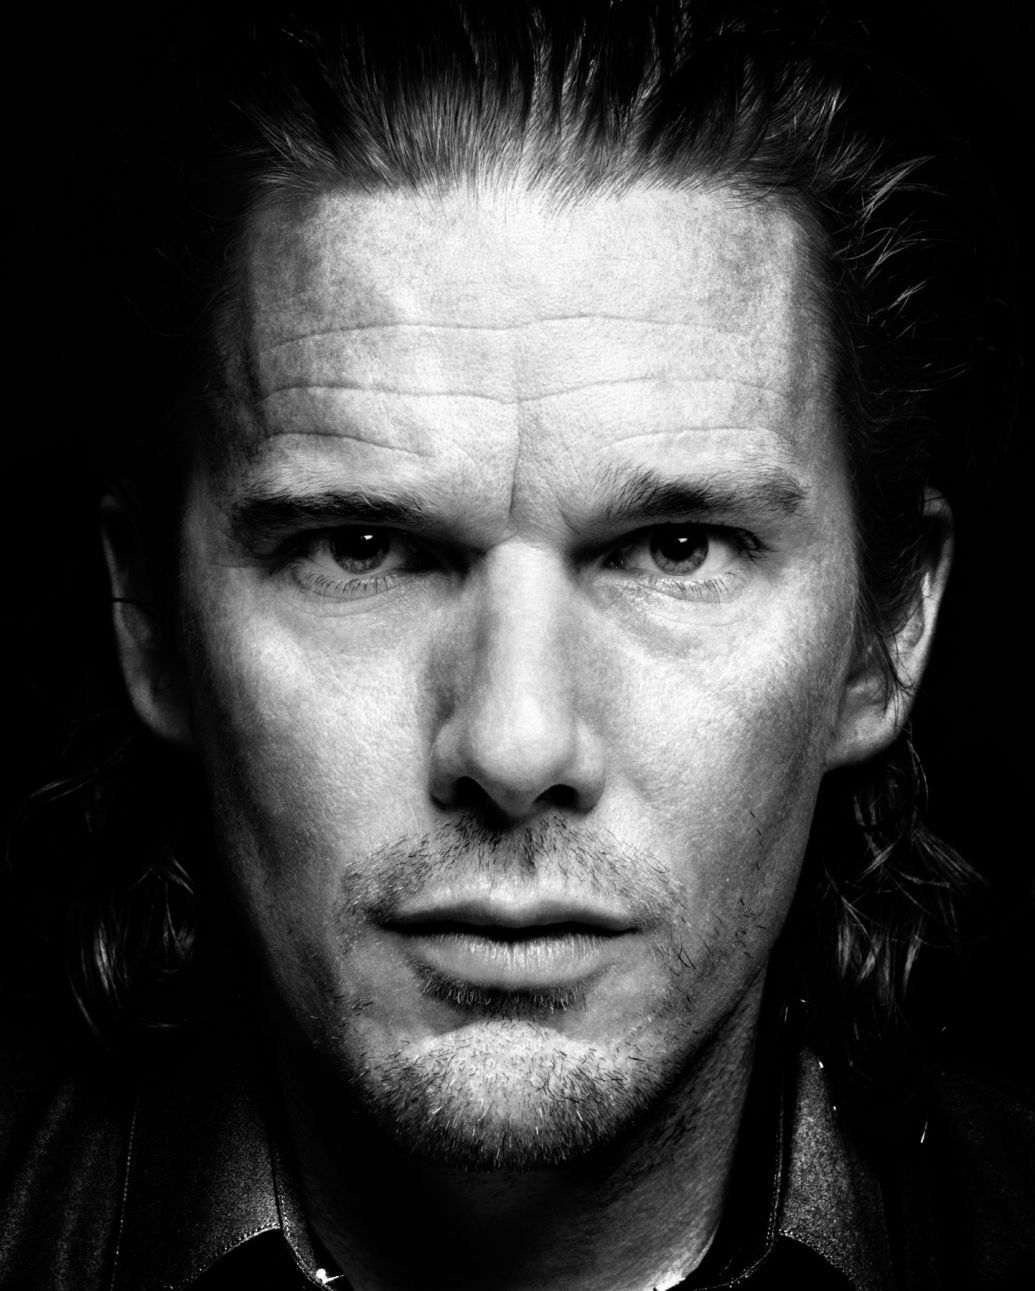 ethan hawke b 1970 american actor writer director photo platon actors impressions. Black Bedroom Furniture Sets. Home Design Ideas